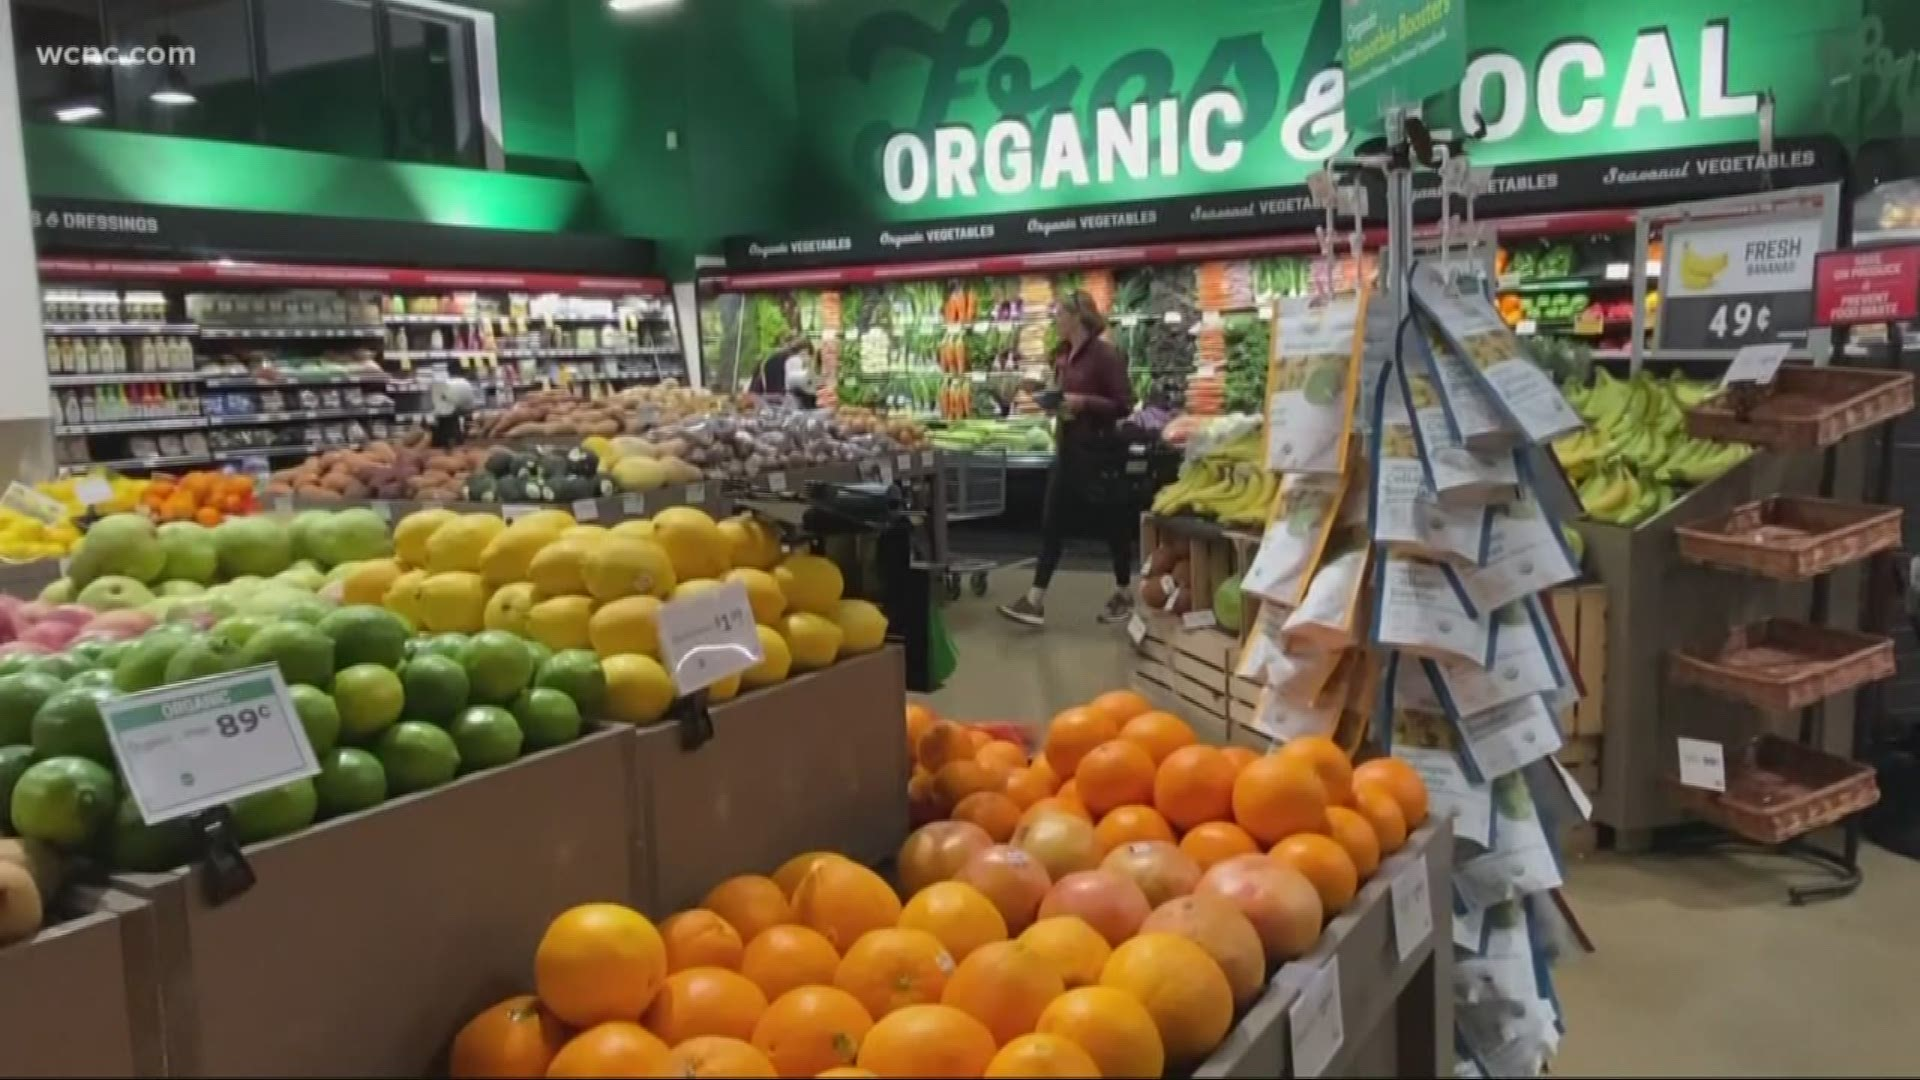 Organic grocery chain Earth Fare to close all stores wcnccom 1920x1080